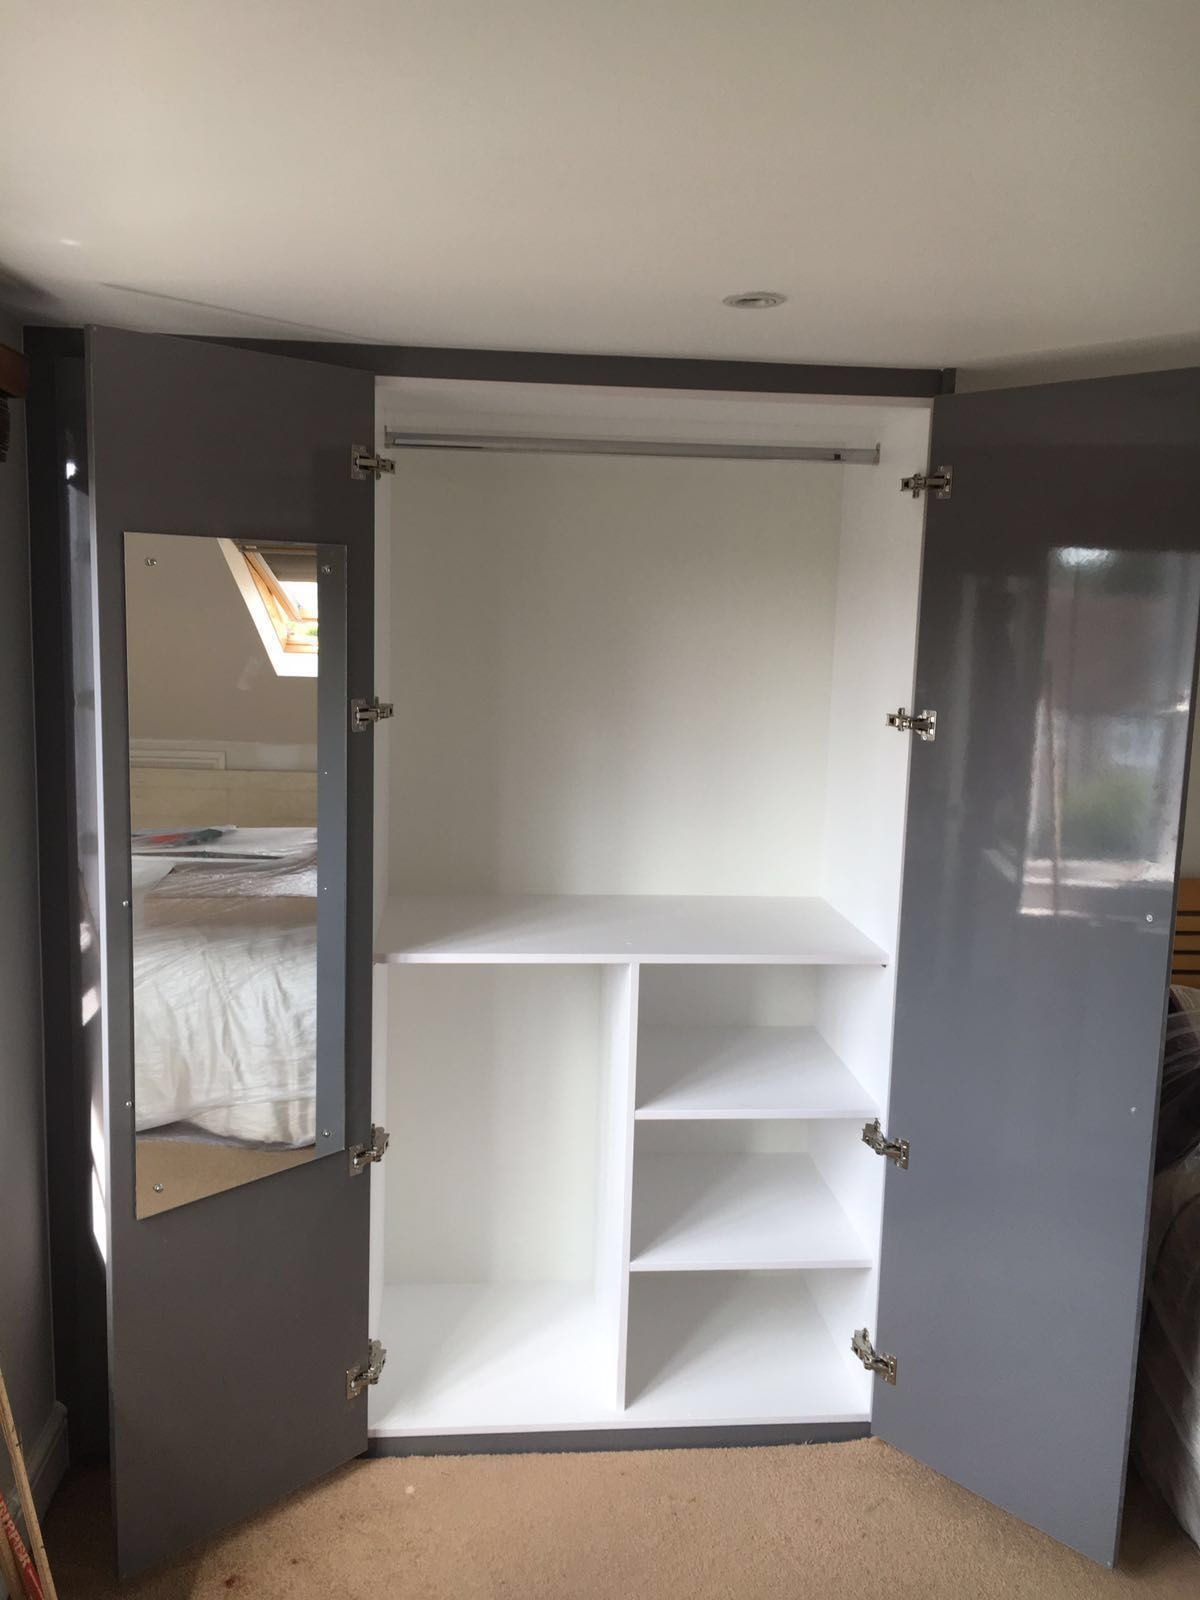 This wardrobe looks great & offers so much space! It's